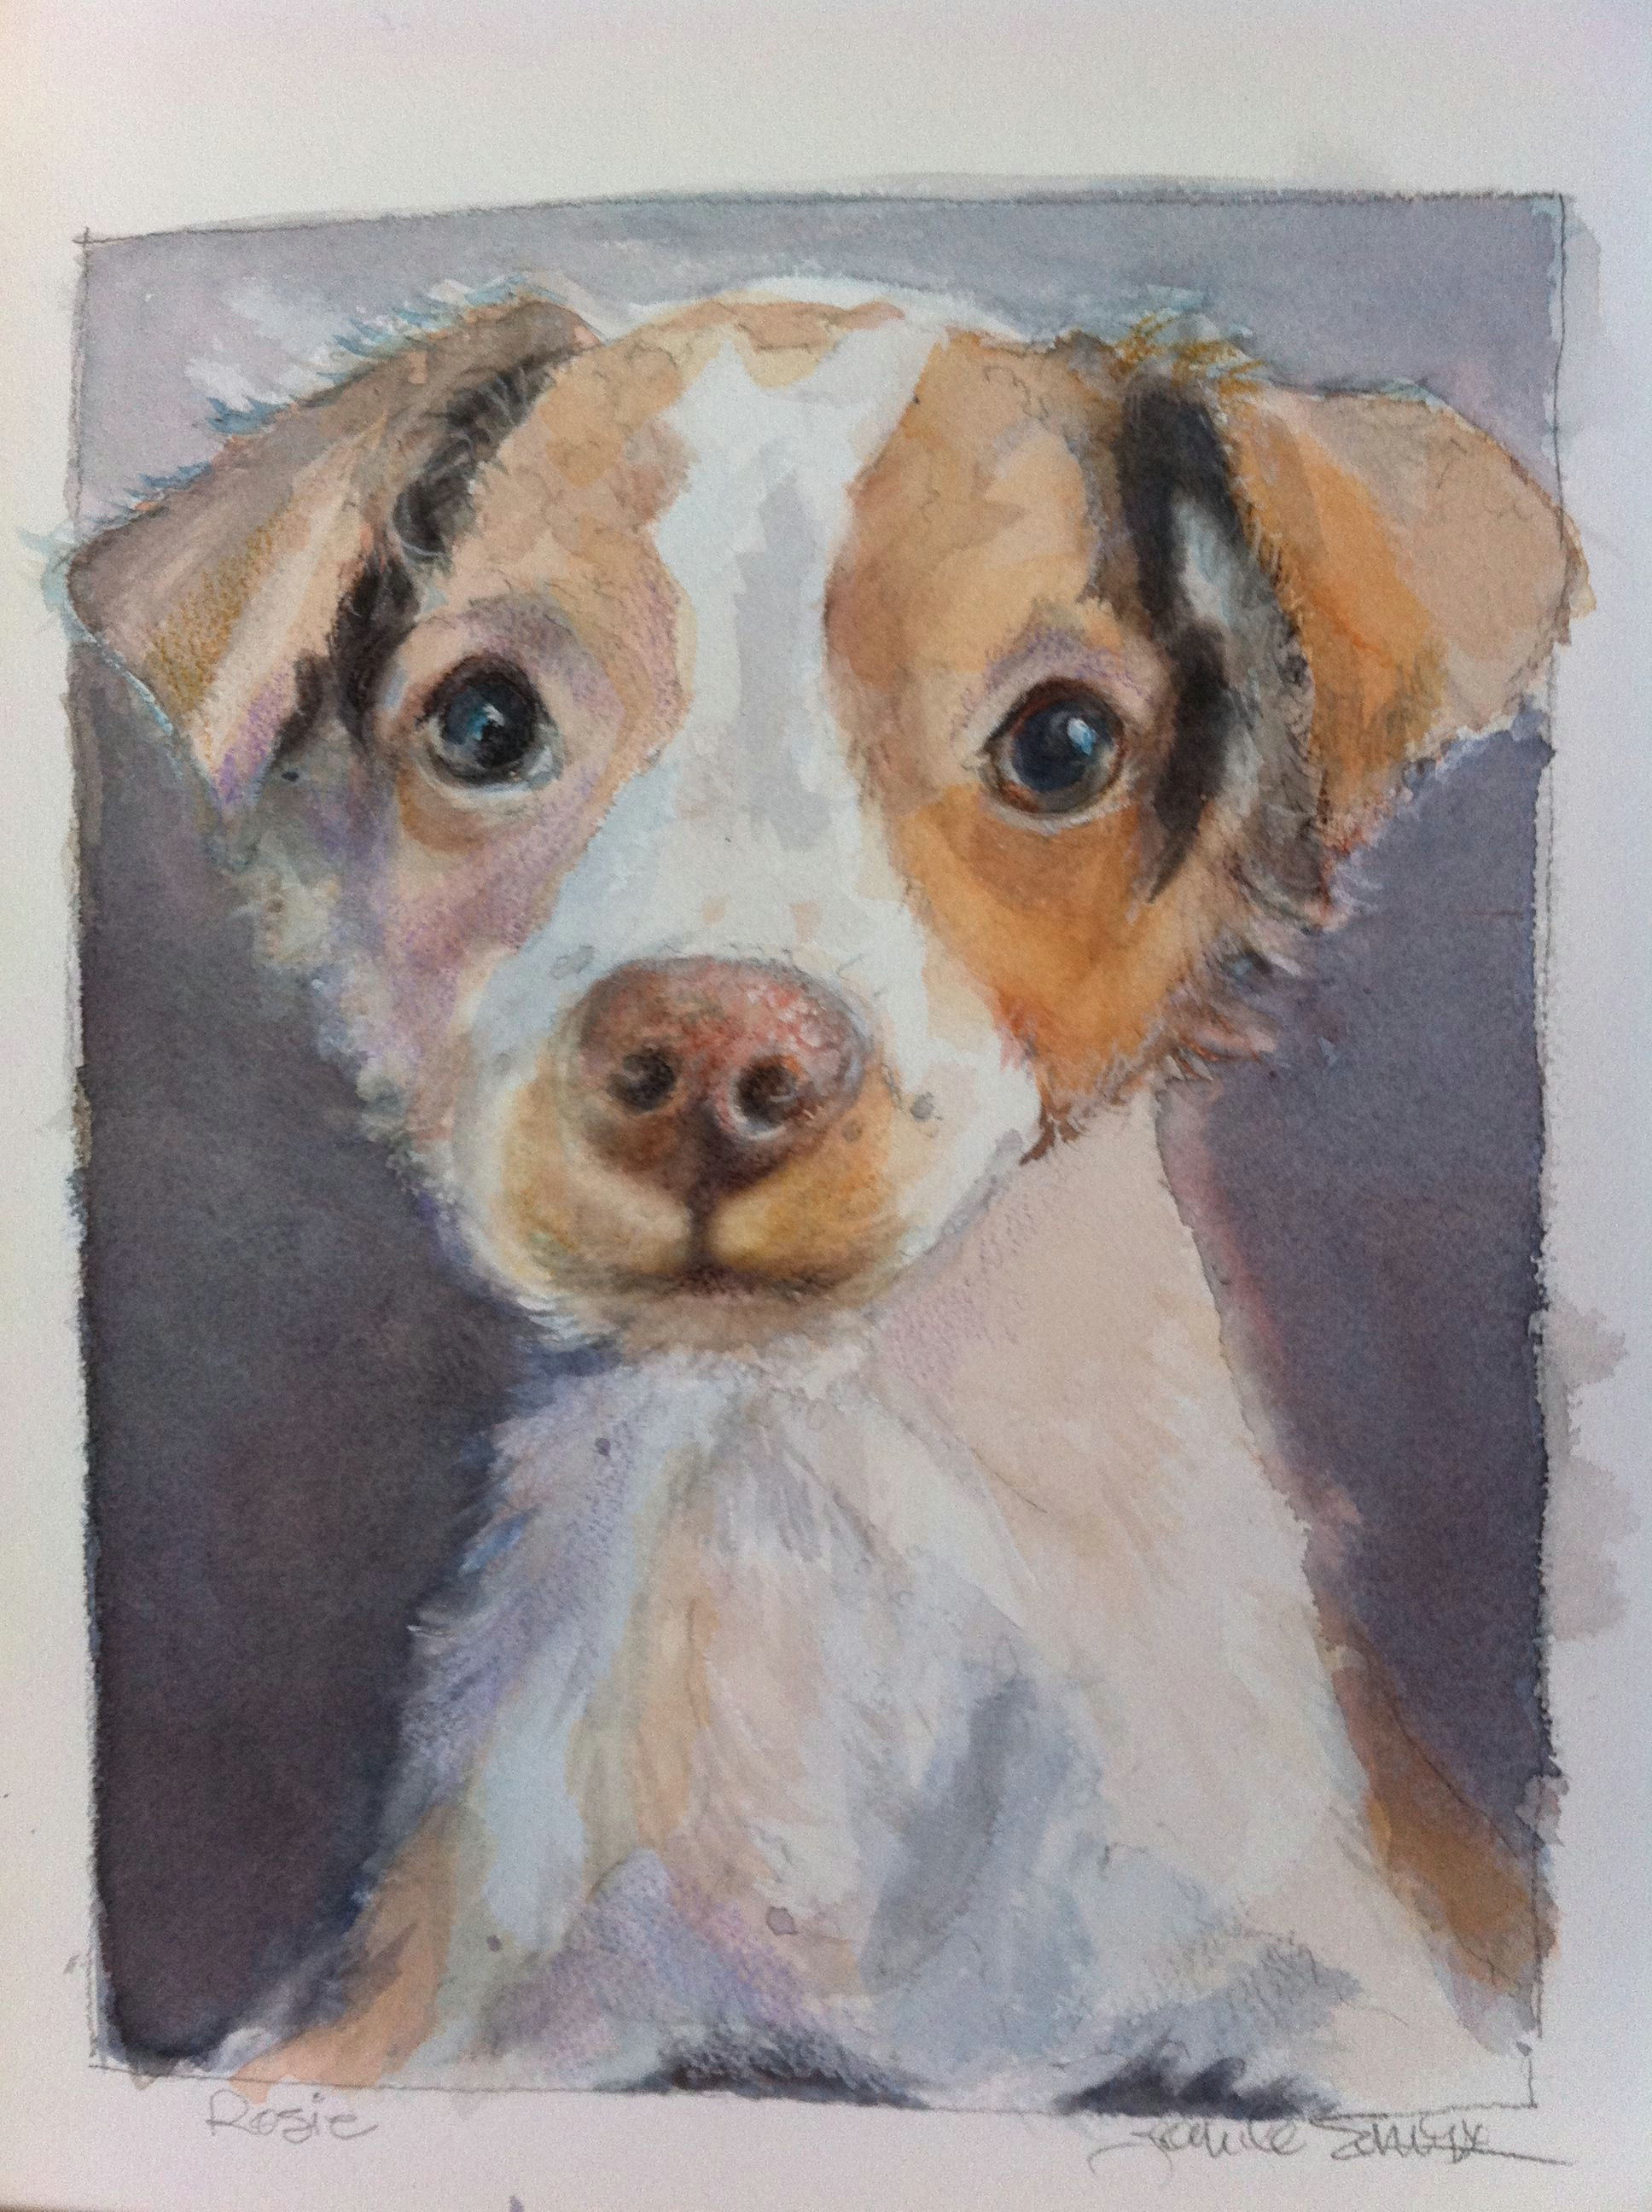 water colors a watercolor drawing a sweet friend joneile emery watercolor joneilesart com dog portraits